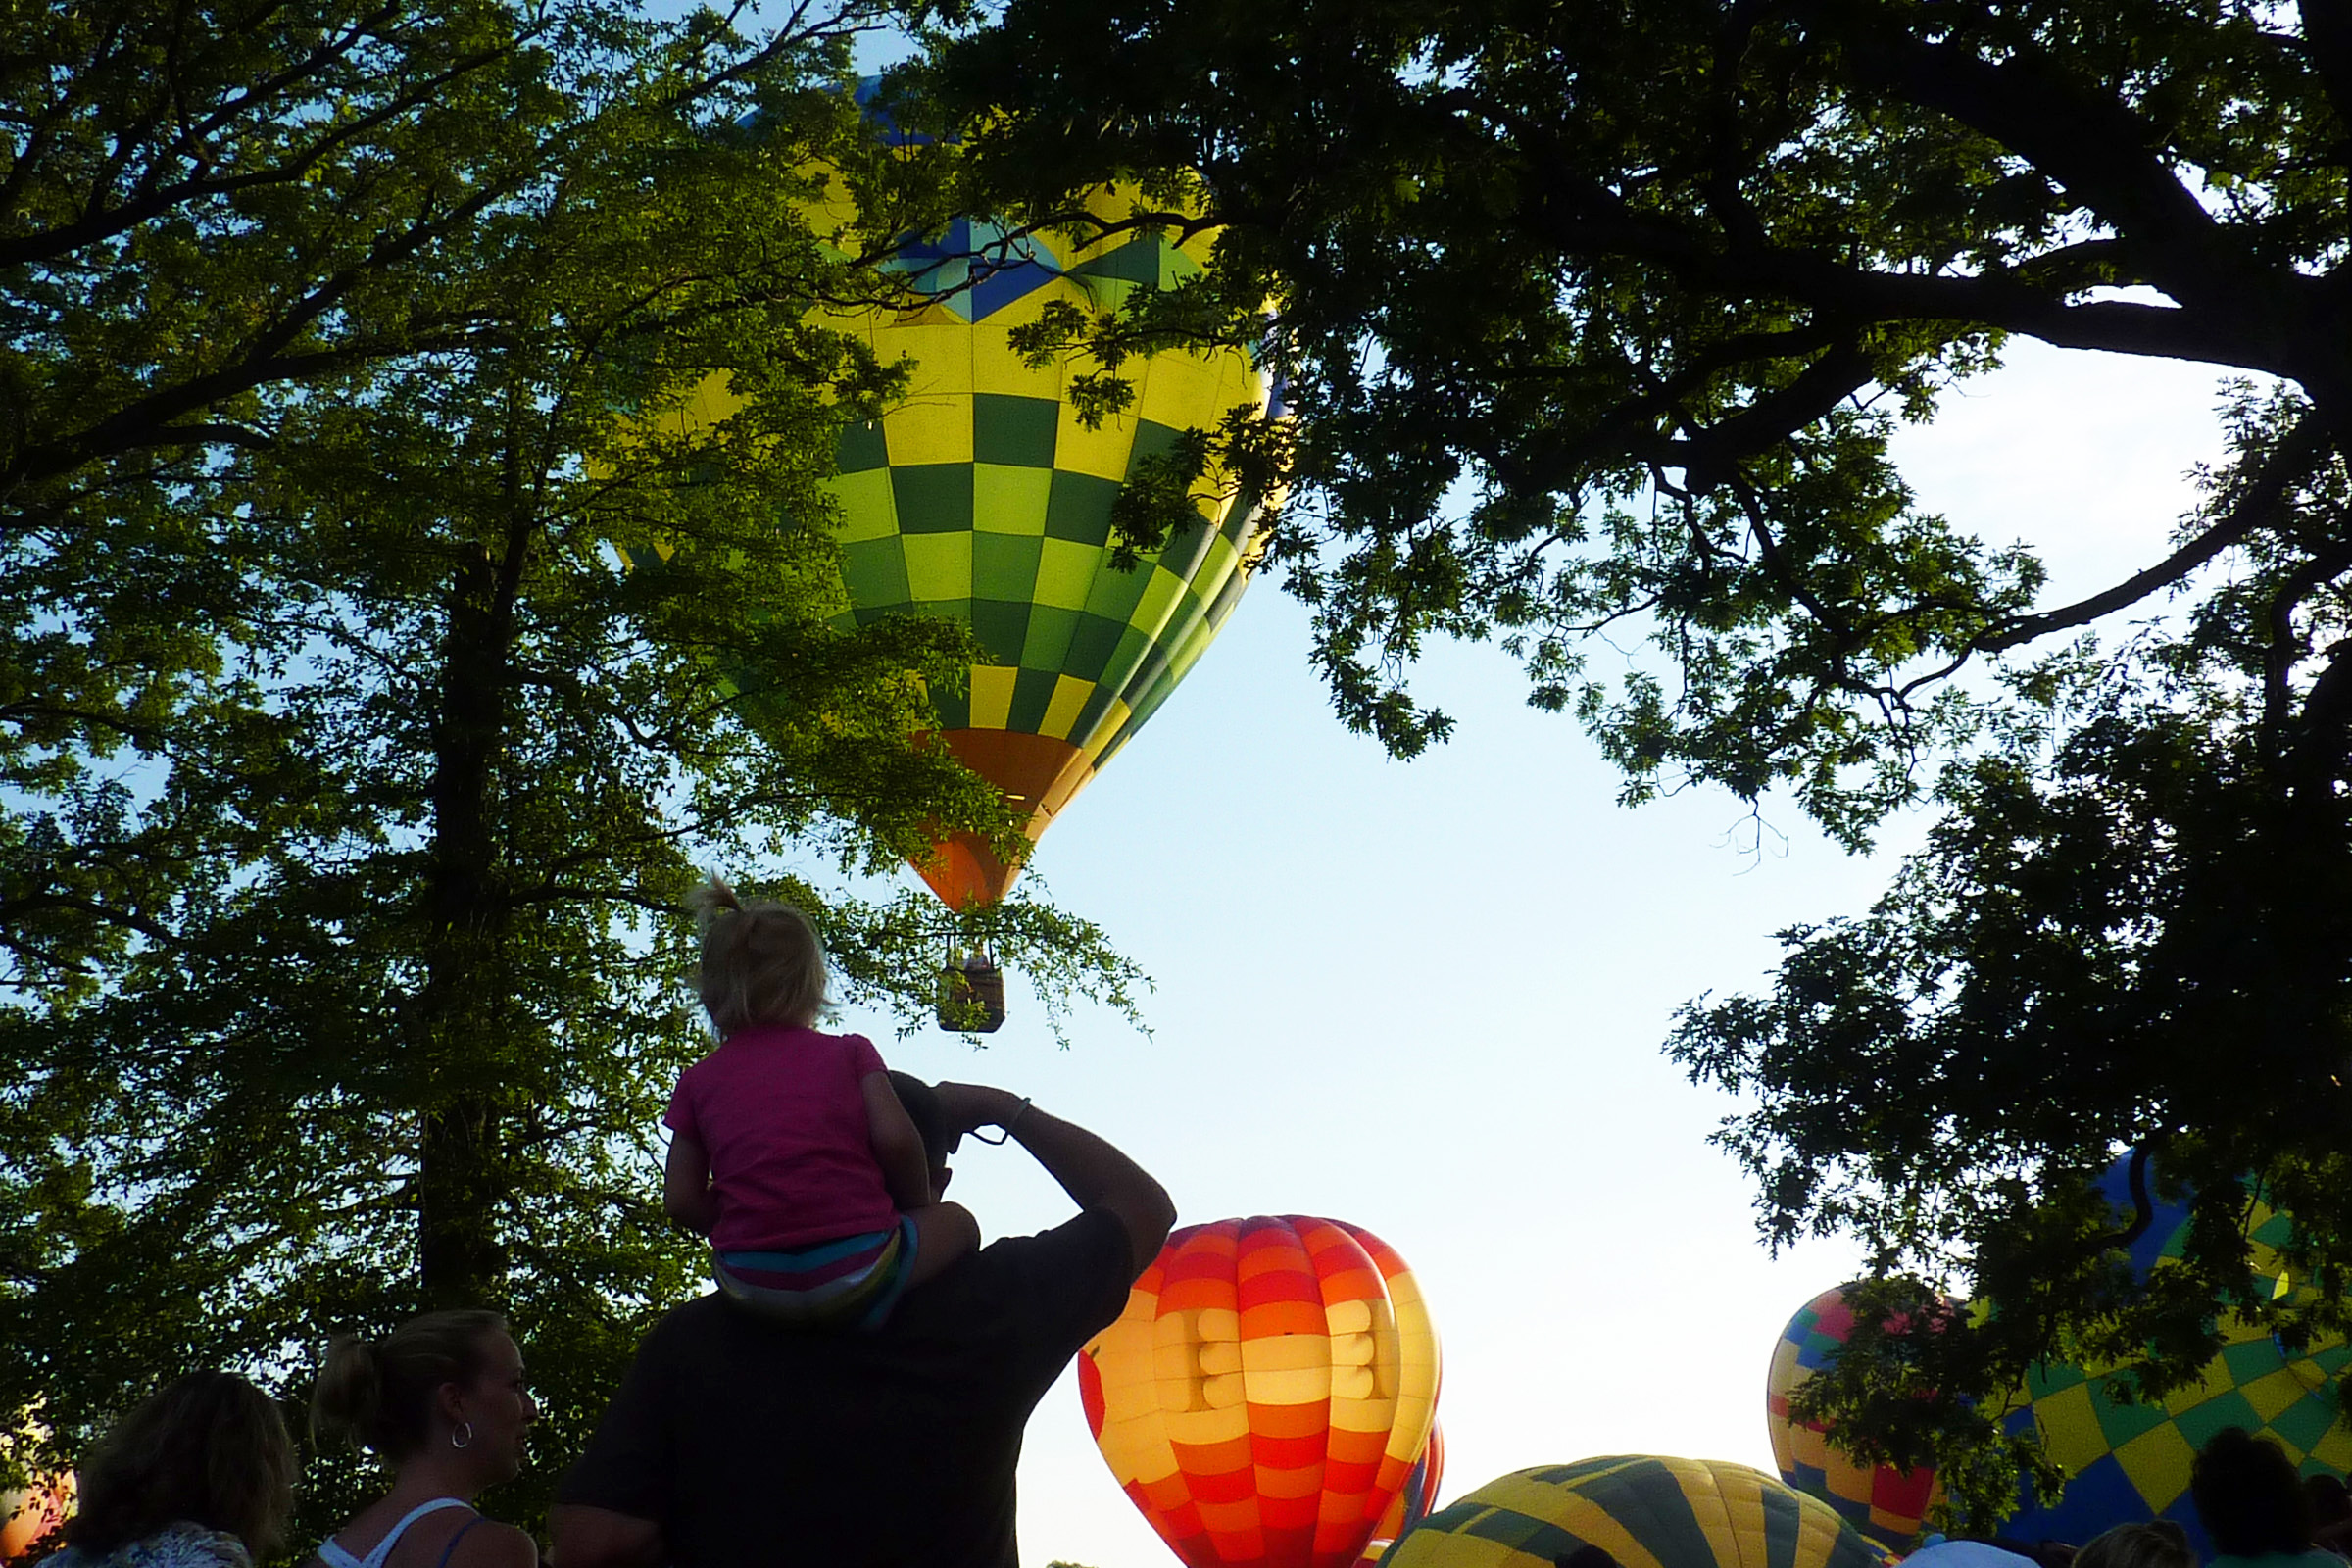 Spectators at the Michigan Challenge Balloonfest in Howell, Michigan